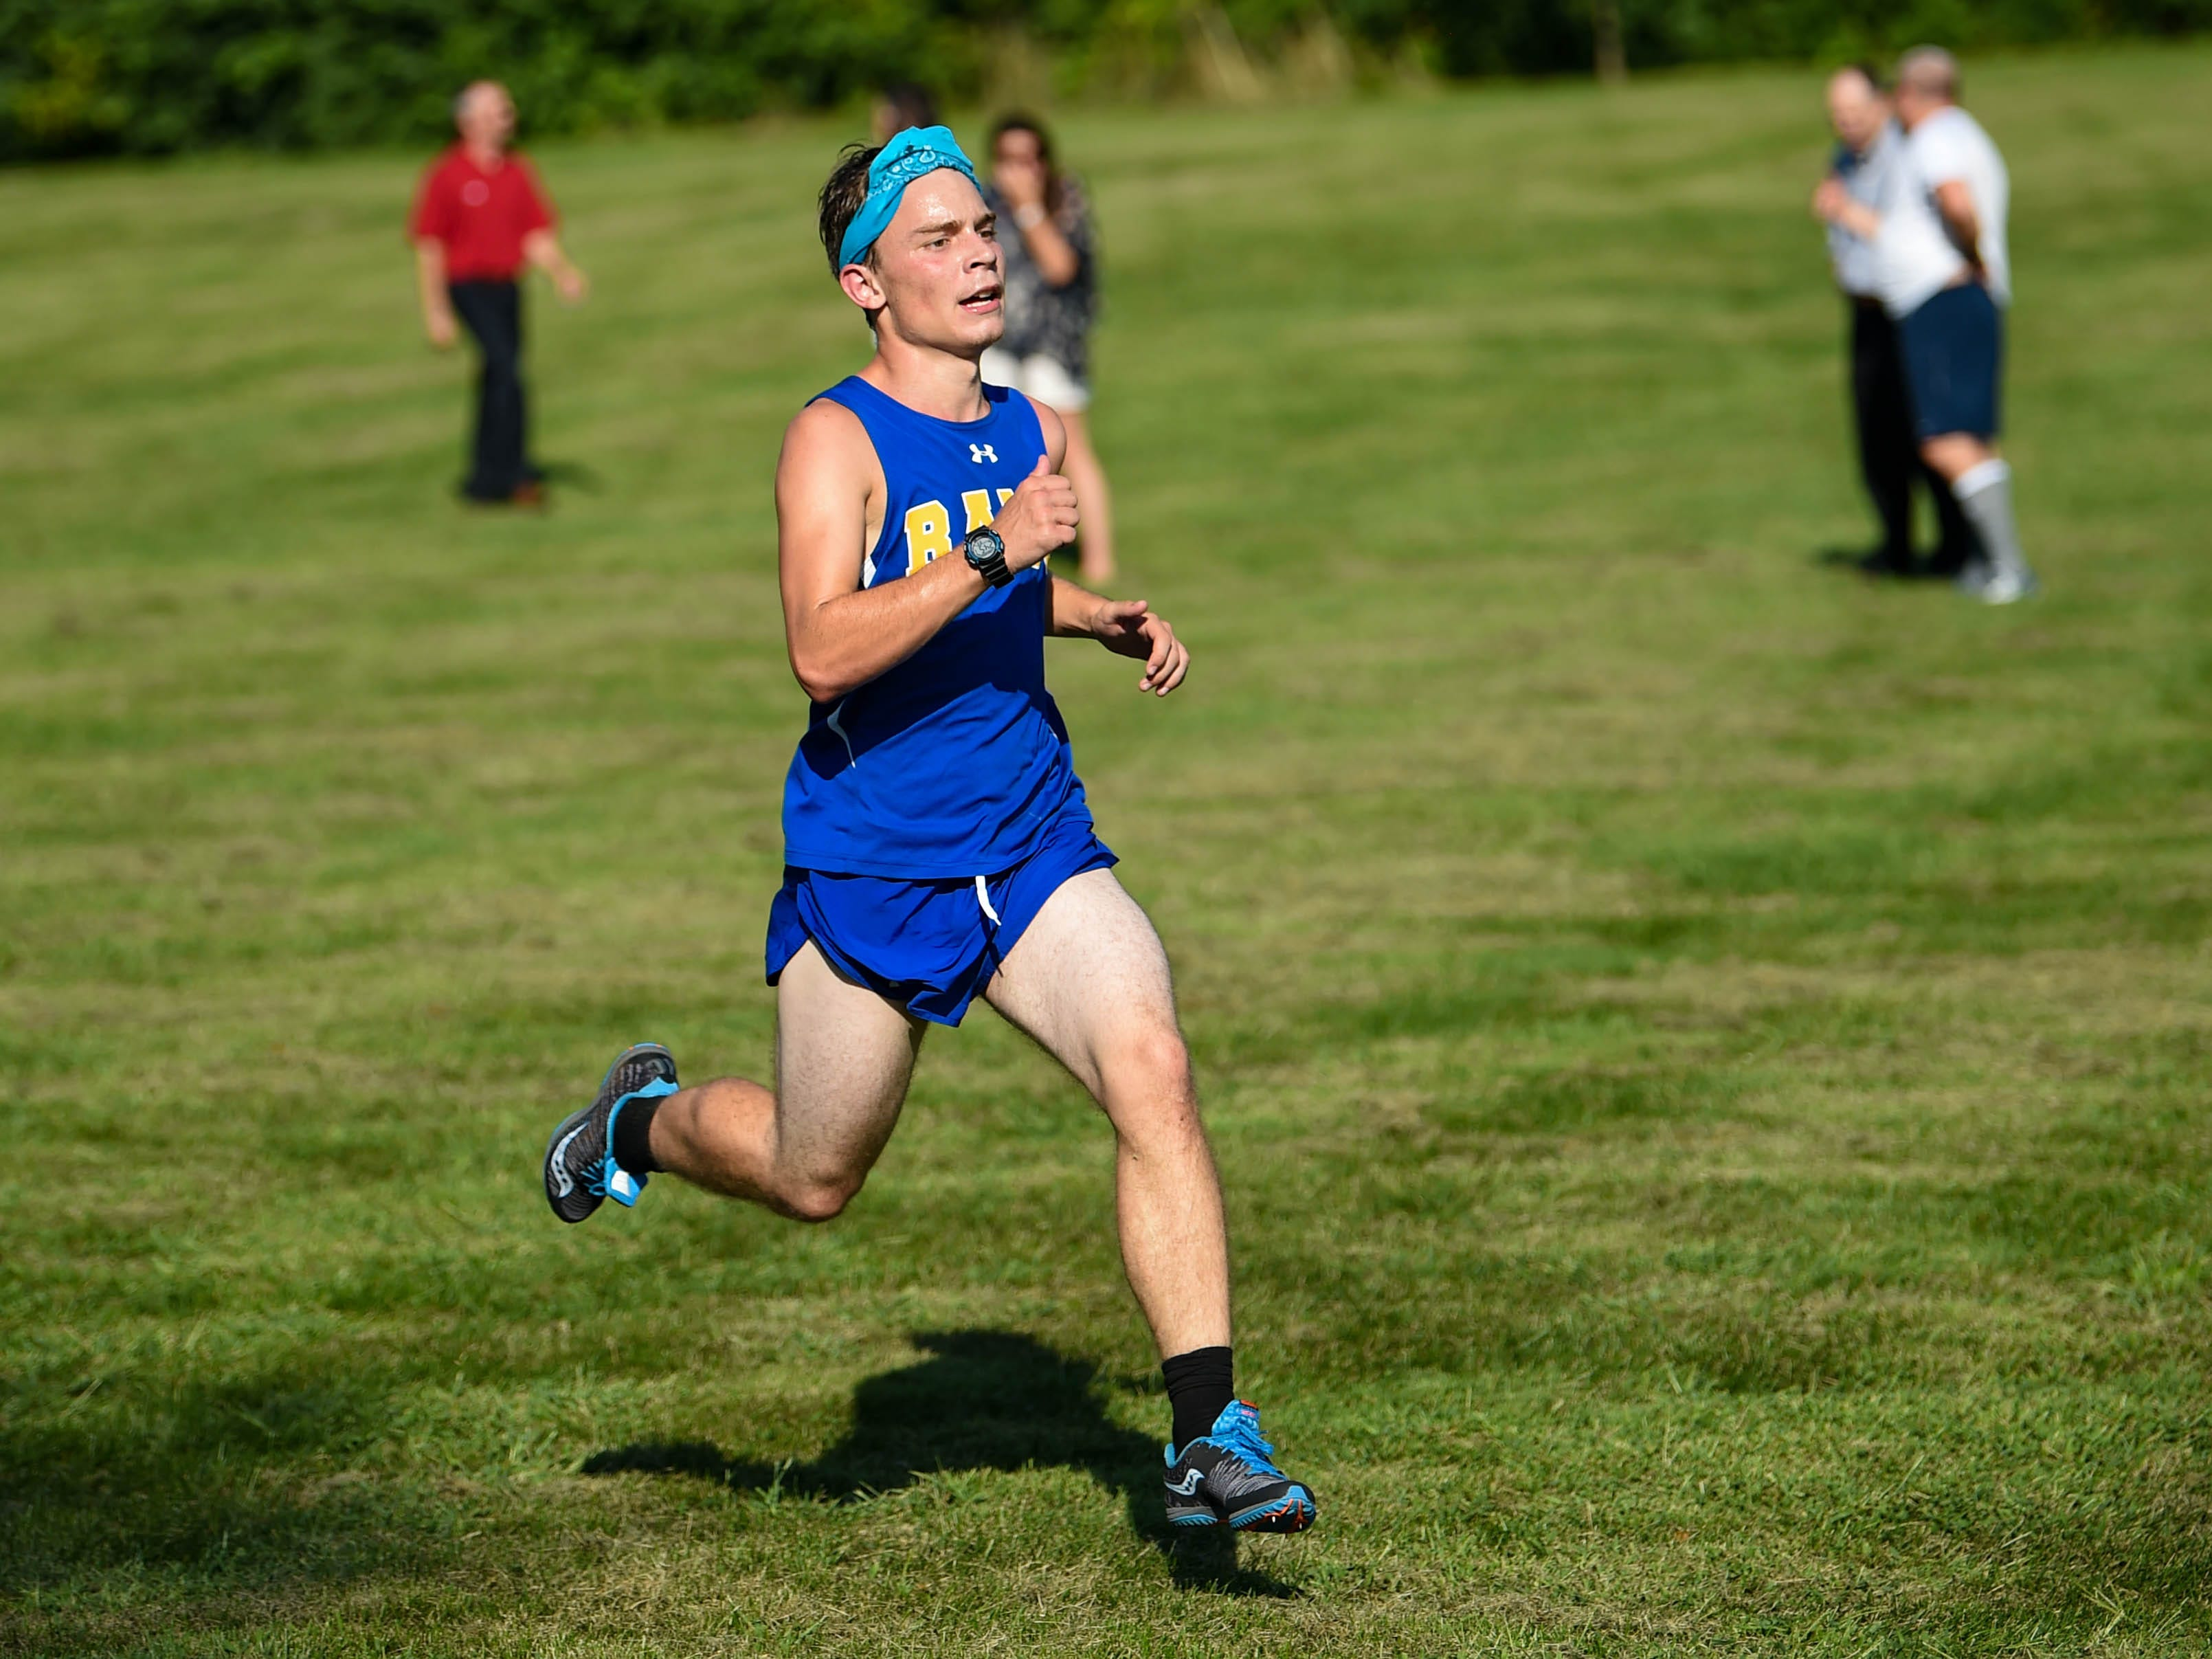 Kennard-Dale sprints to the finish during the Cross Country scrimmage at John Rudy County Park on August 30, 2018.